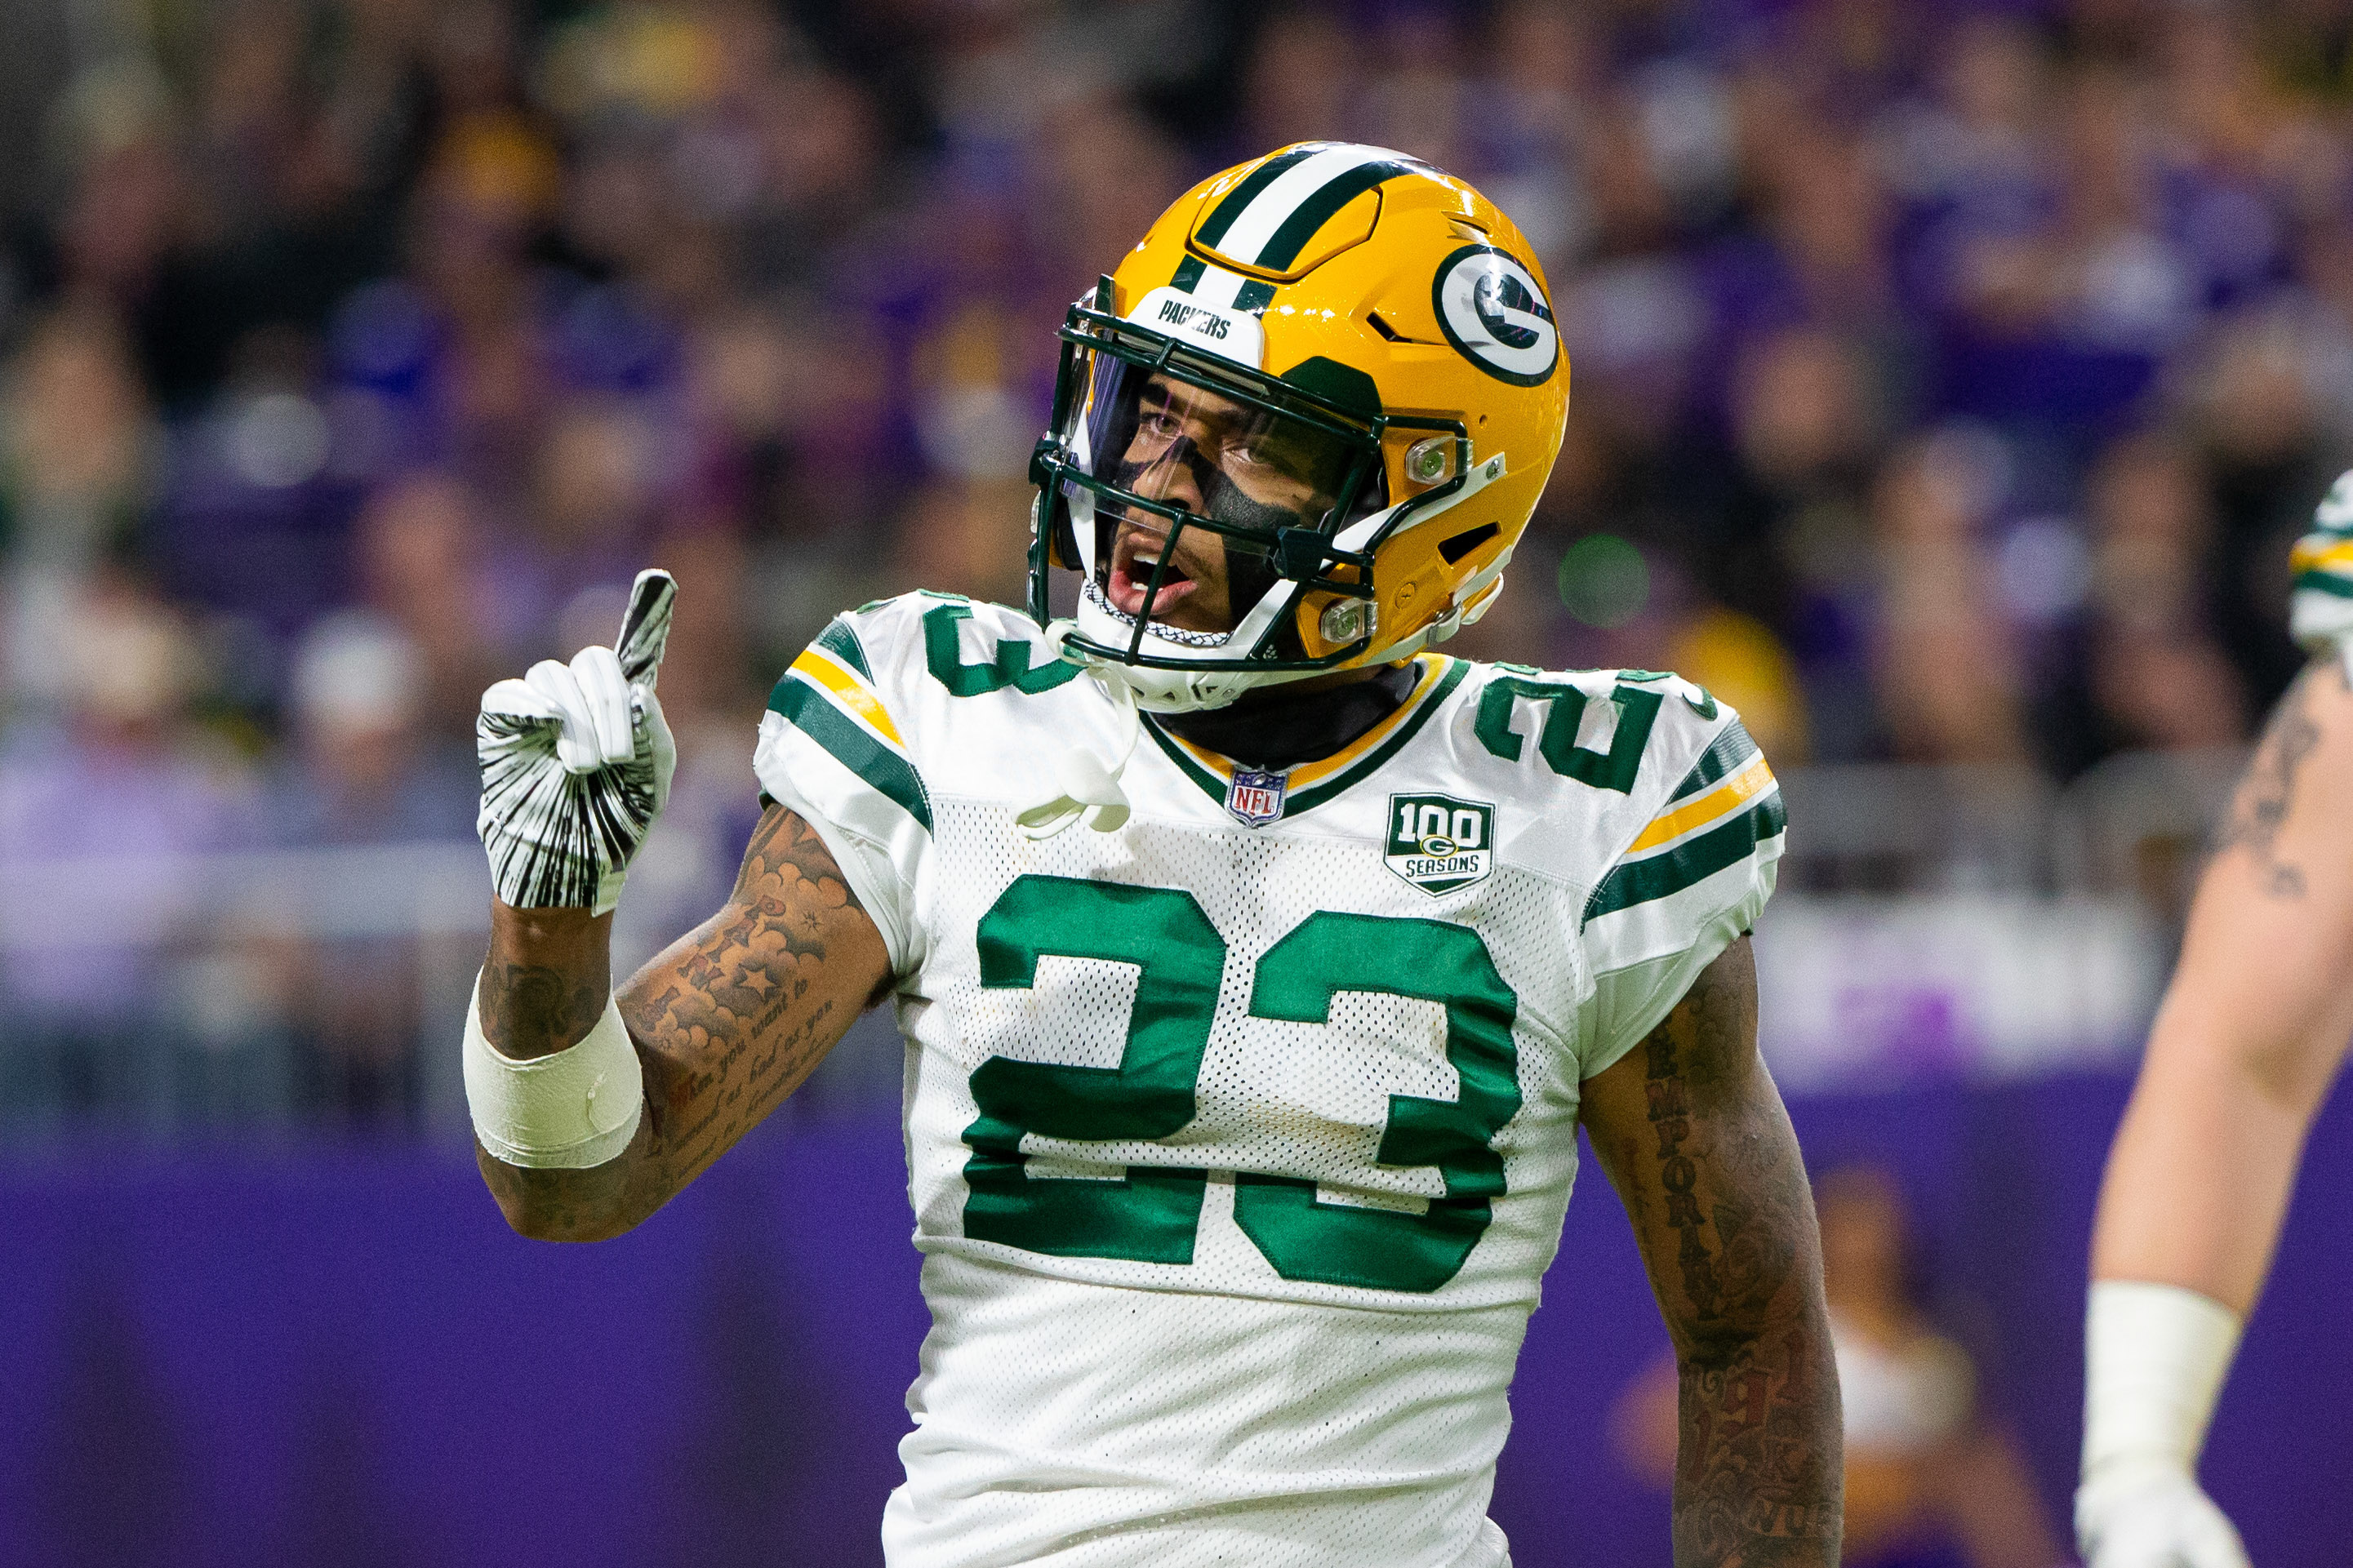 The Green Bay Packers' secondary needs help